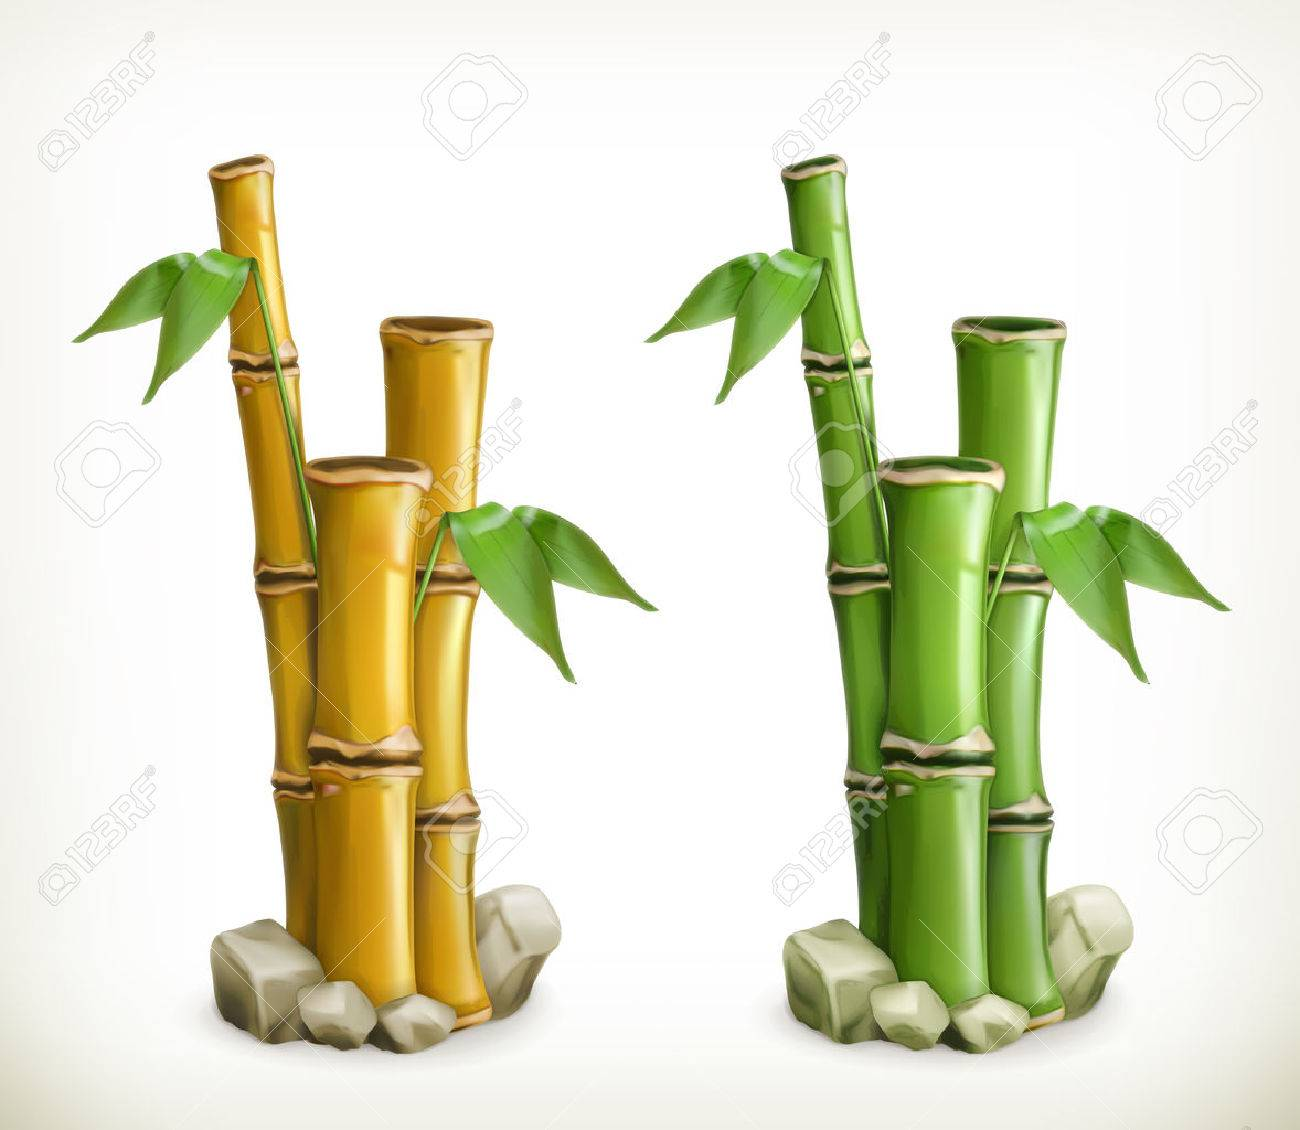 bamboo vector icon royalty free cliparts vectors and stock rh 123rf com bamboo victoria desk bamboo victoria open tables